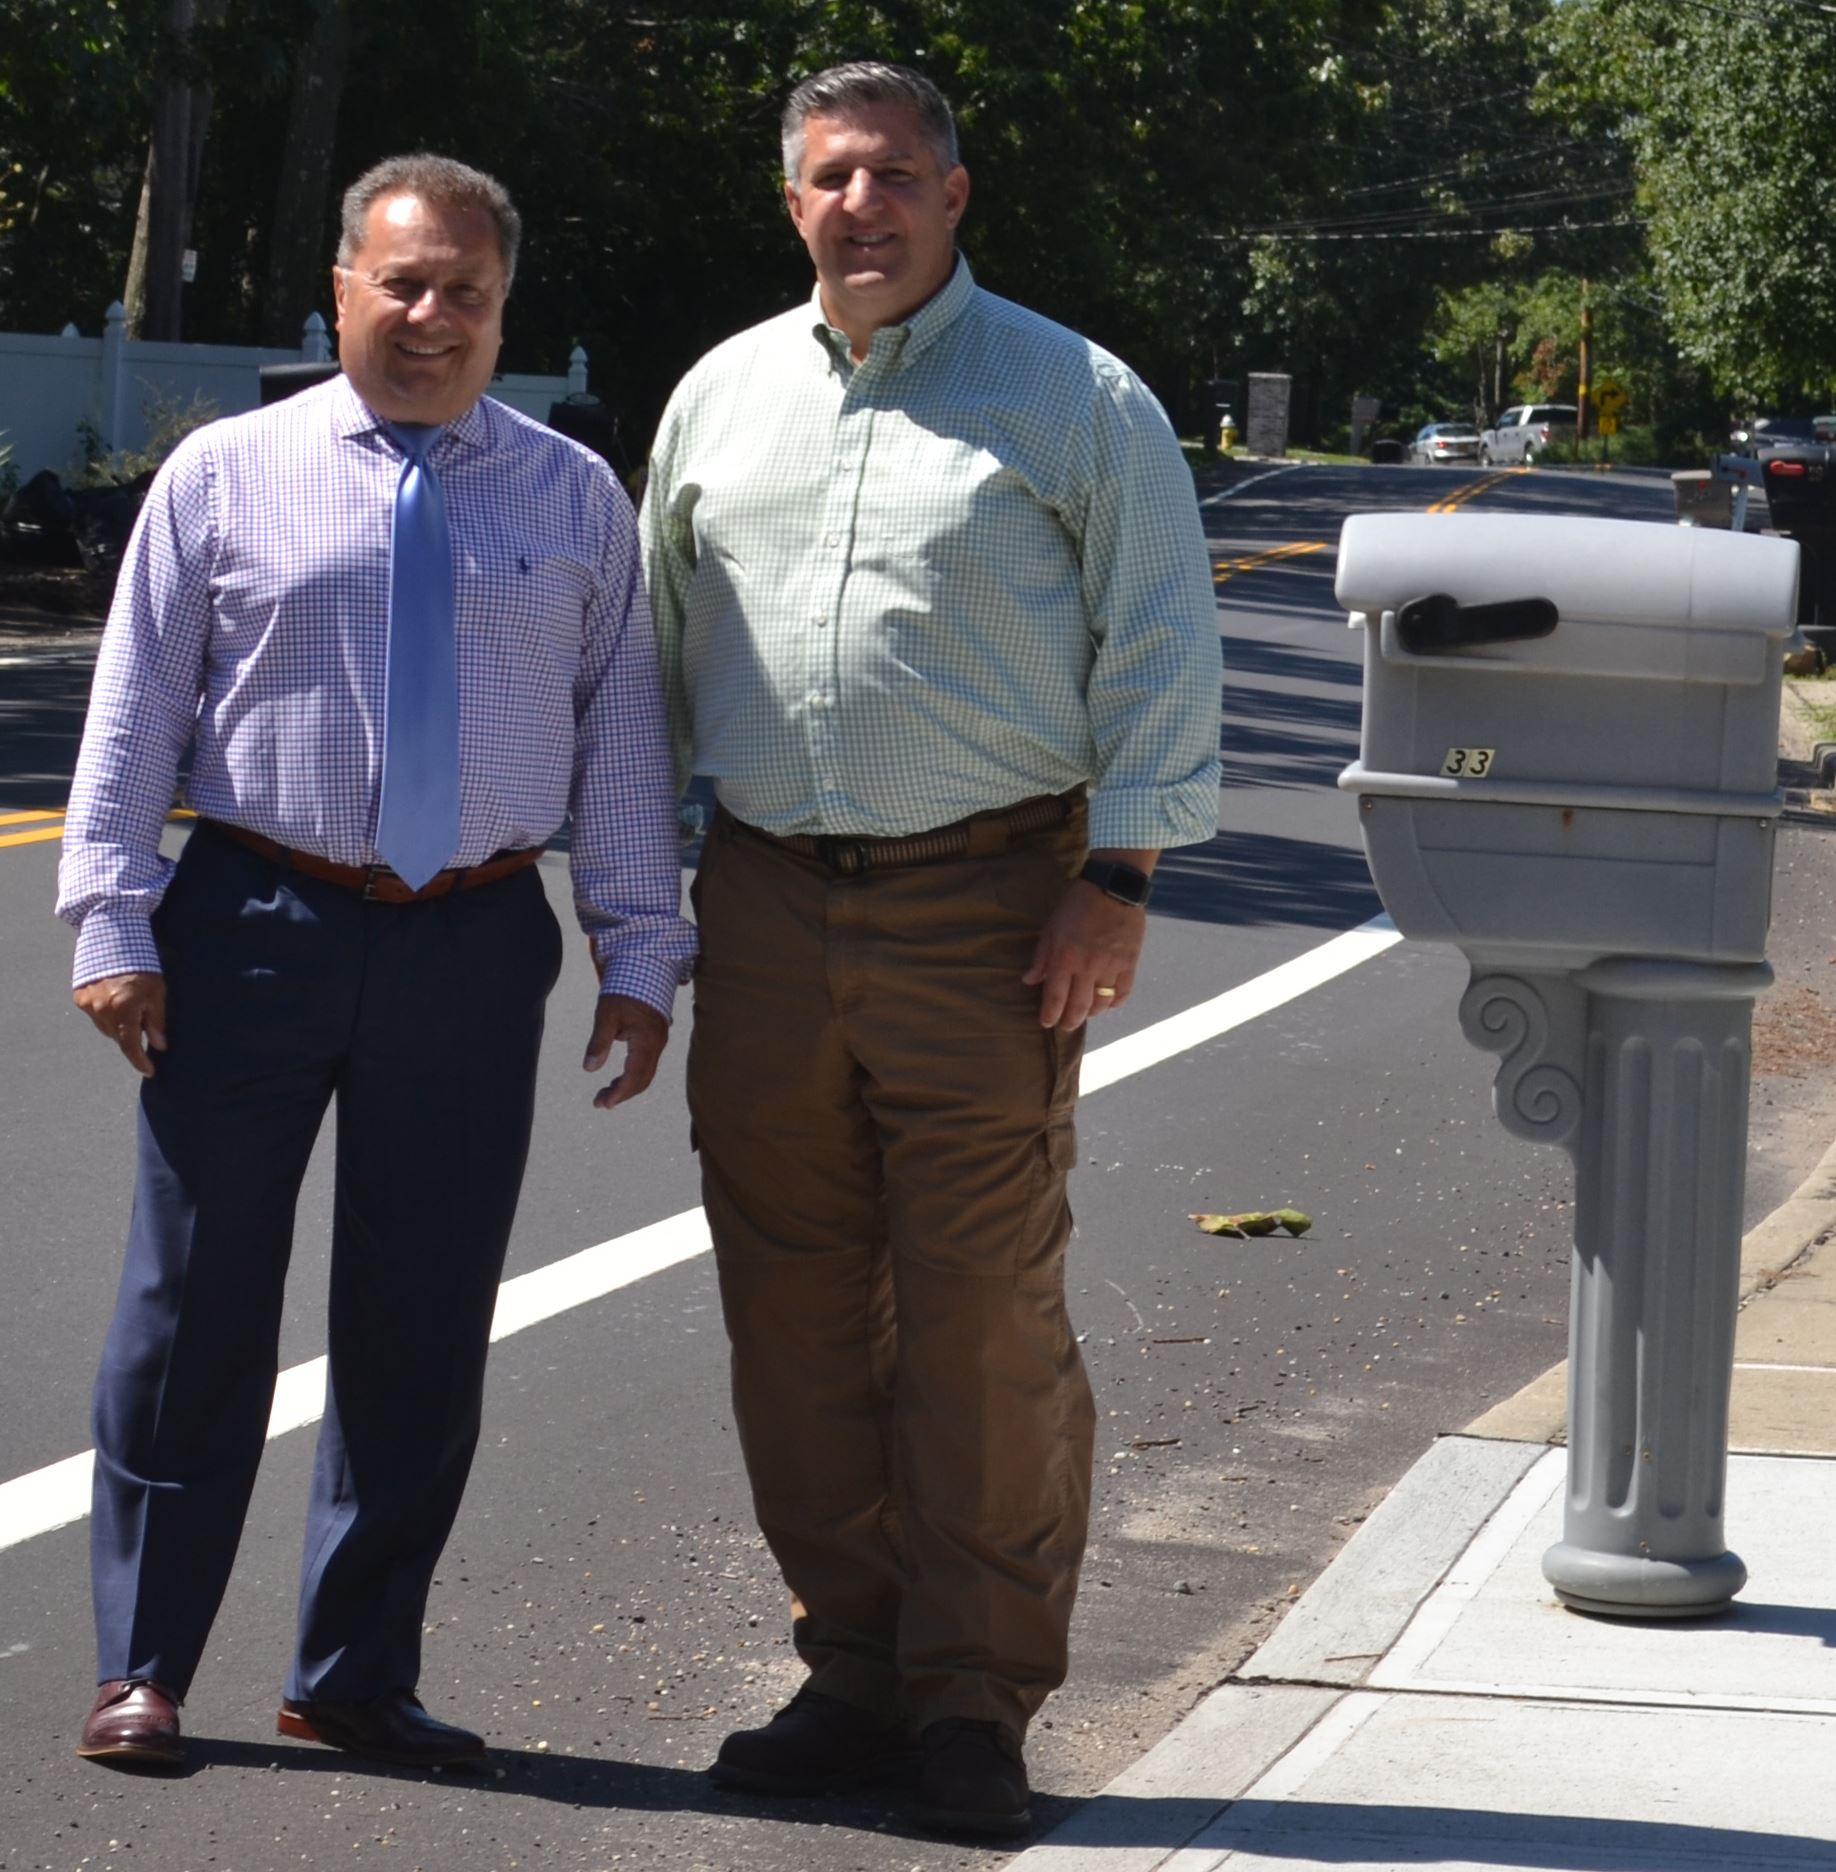 – Brookhaven Town Highway Superintendent Daniel P. Losquadro and Councilman Michael Loguercio standi